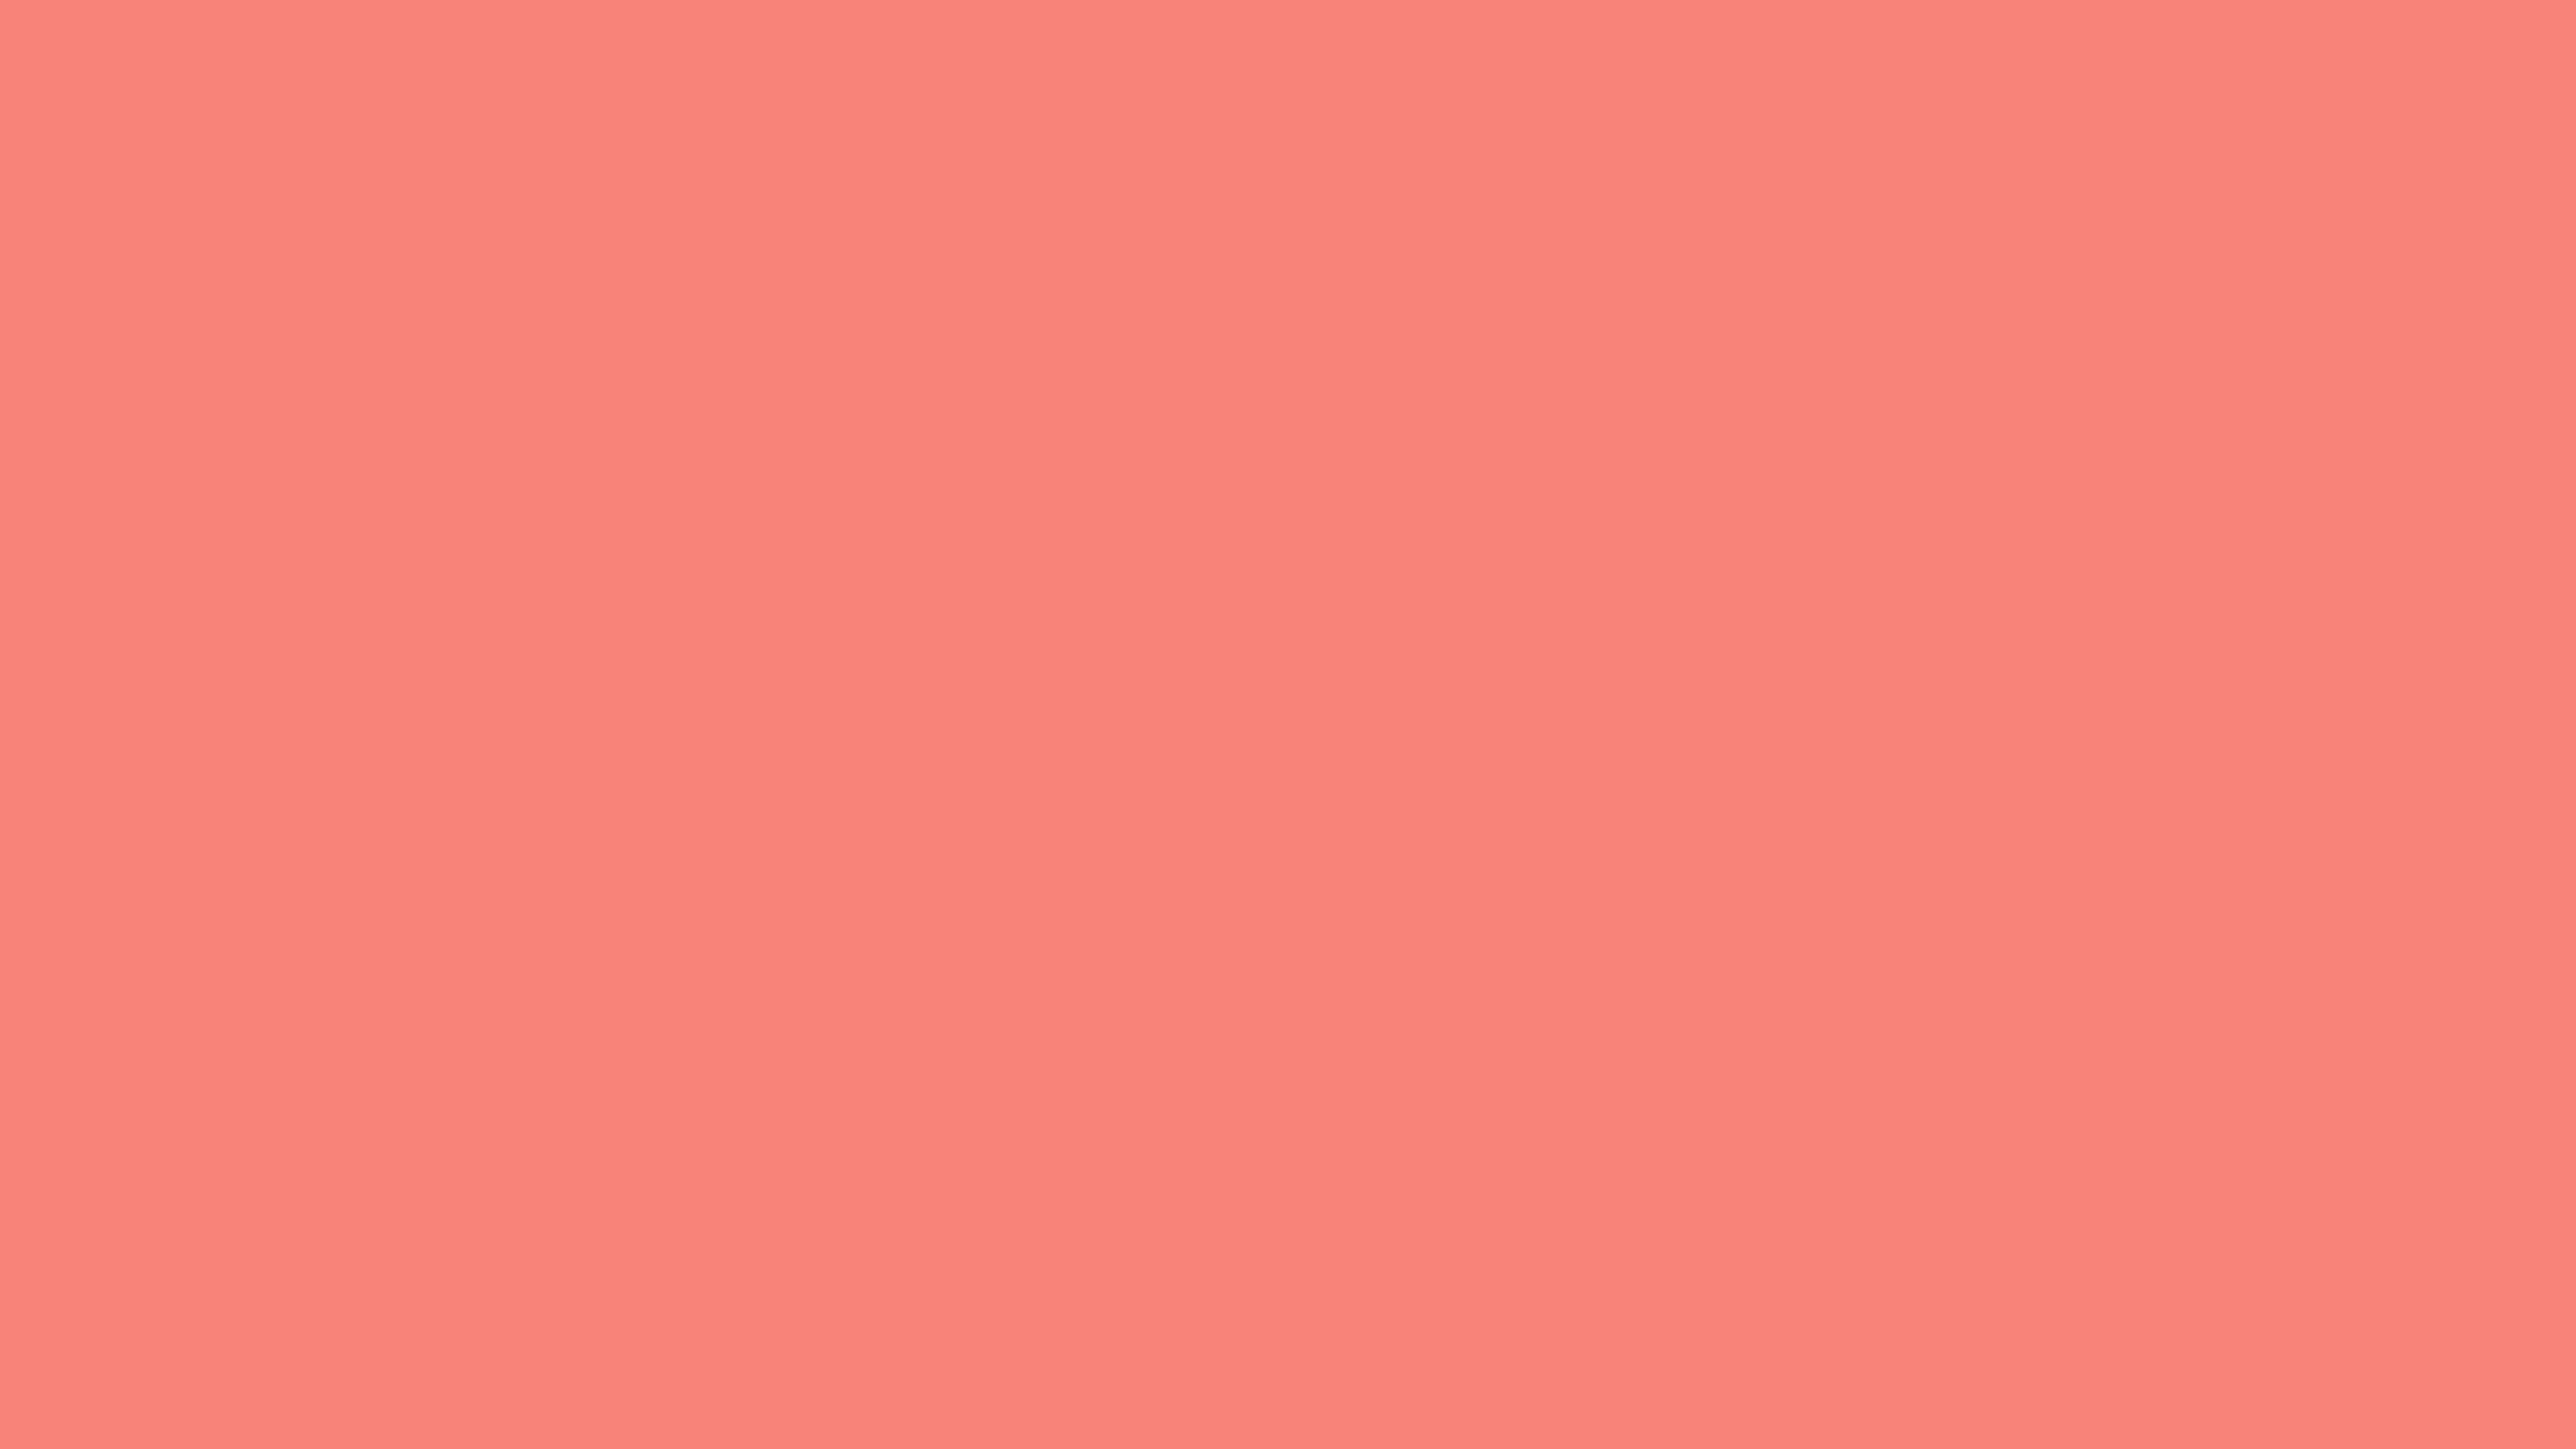 4096x2304 Congo Pink Solid Color Background